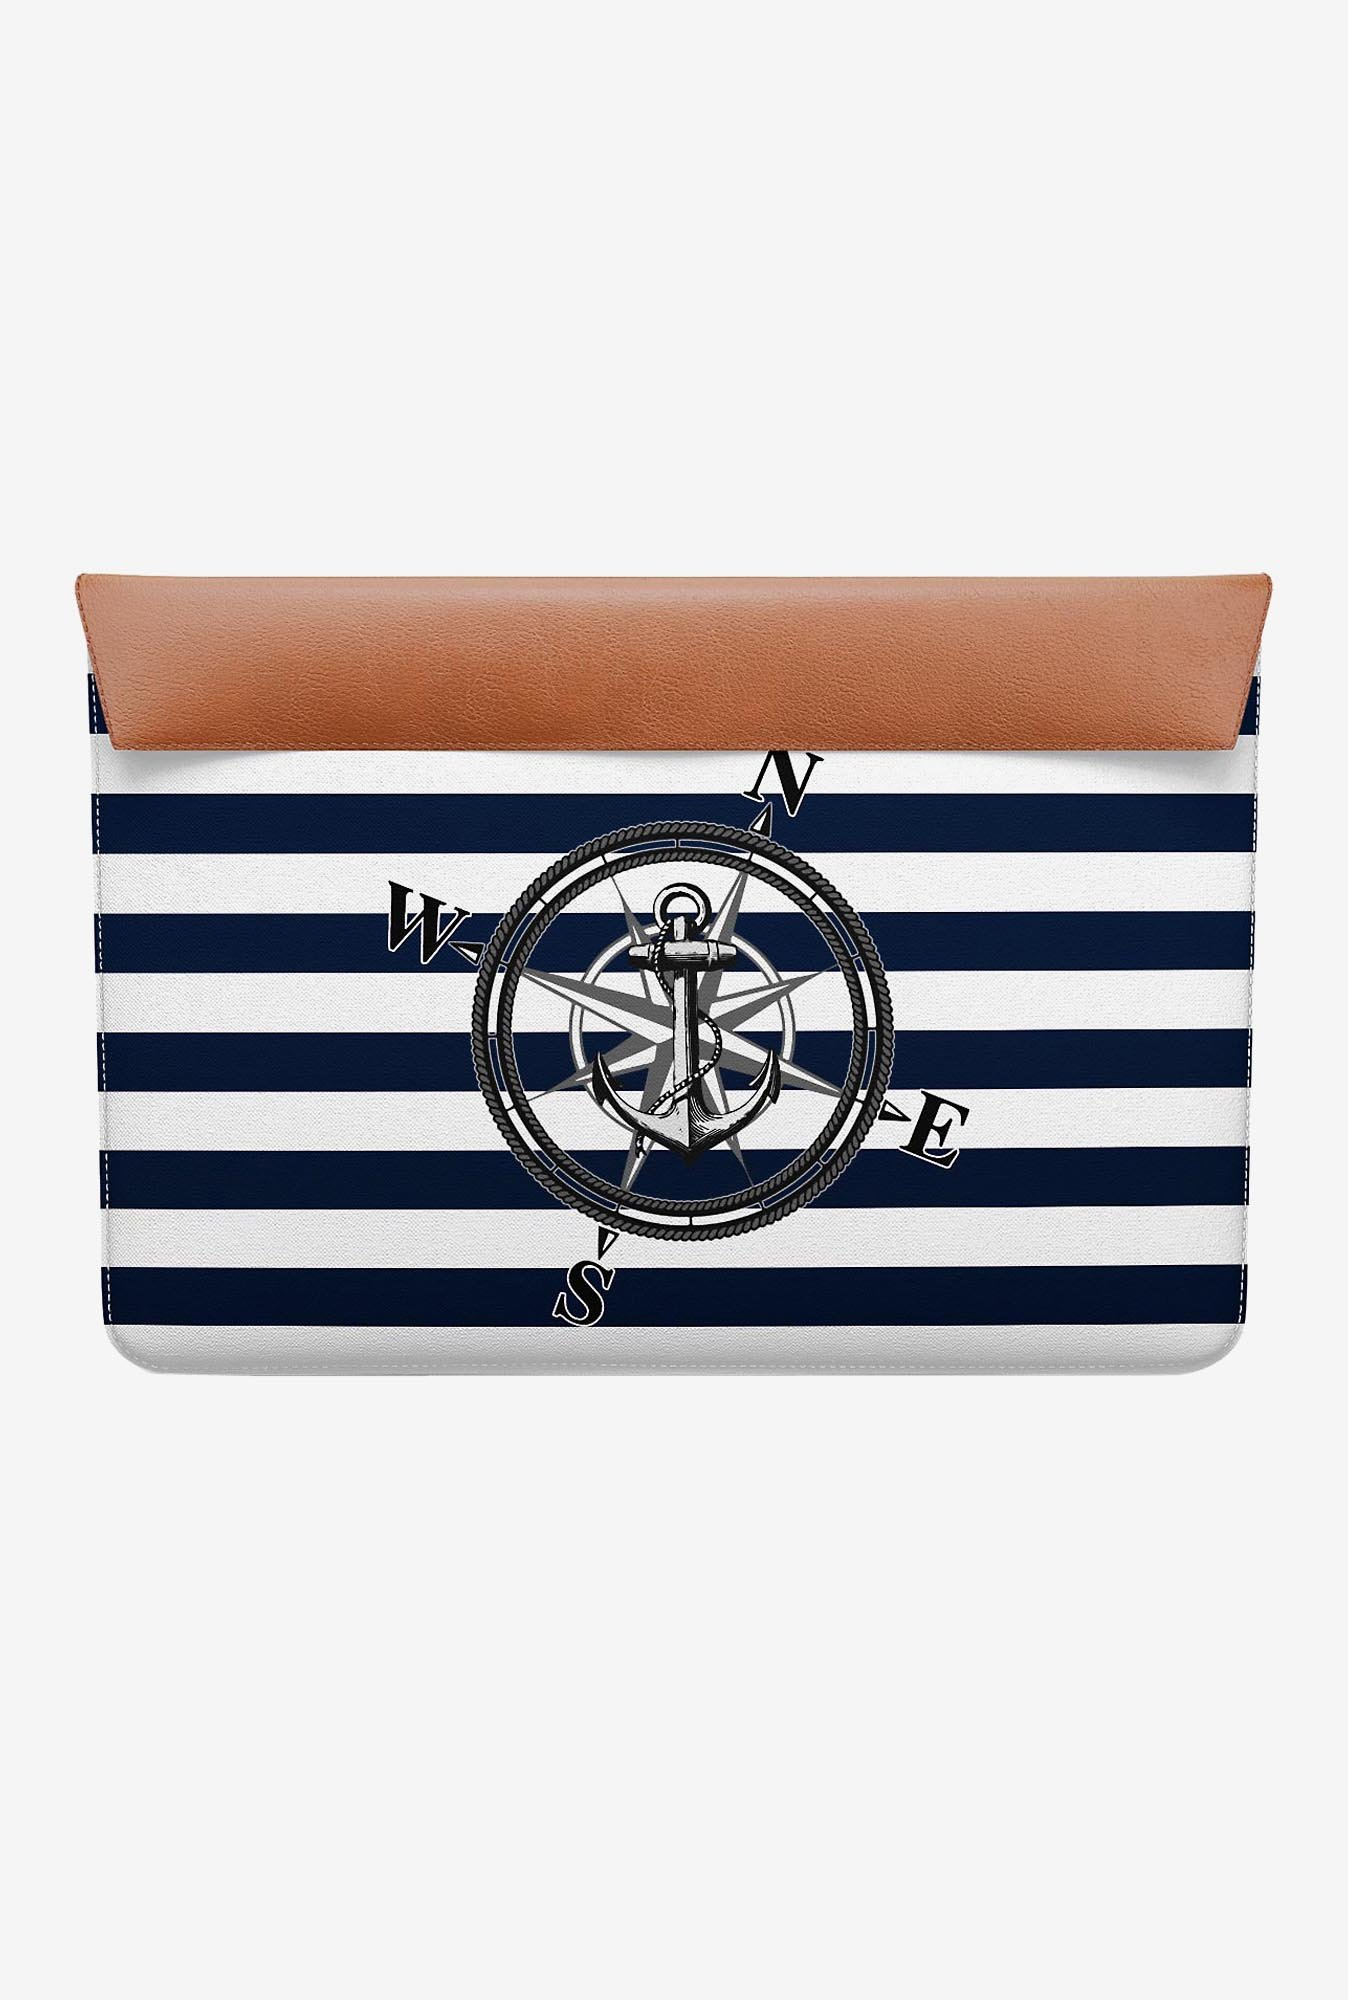 DailyObjects Striped Nautica MacBook Air 11 Envelope Sleeve